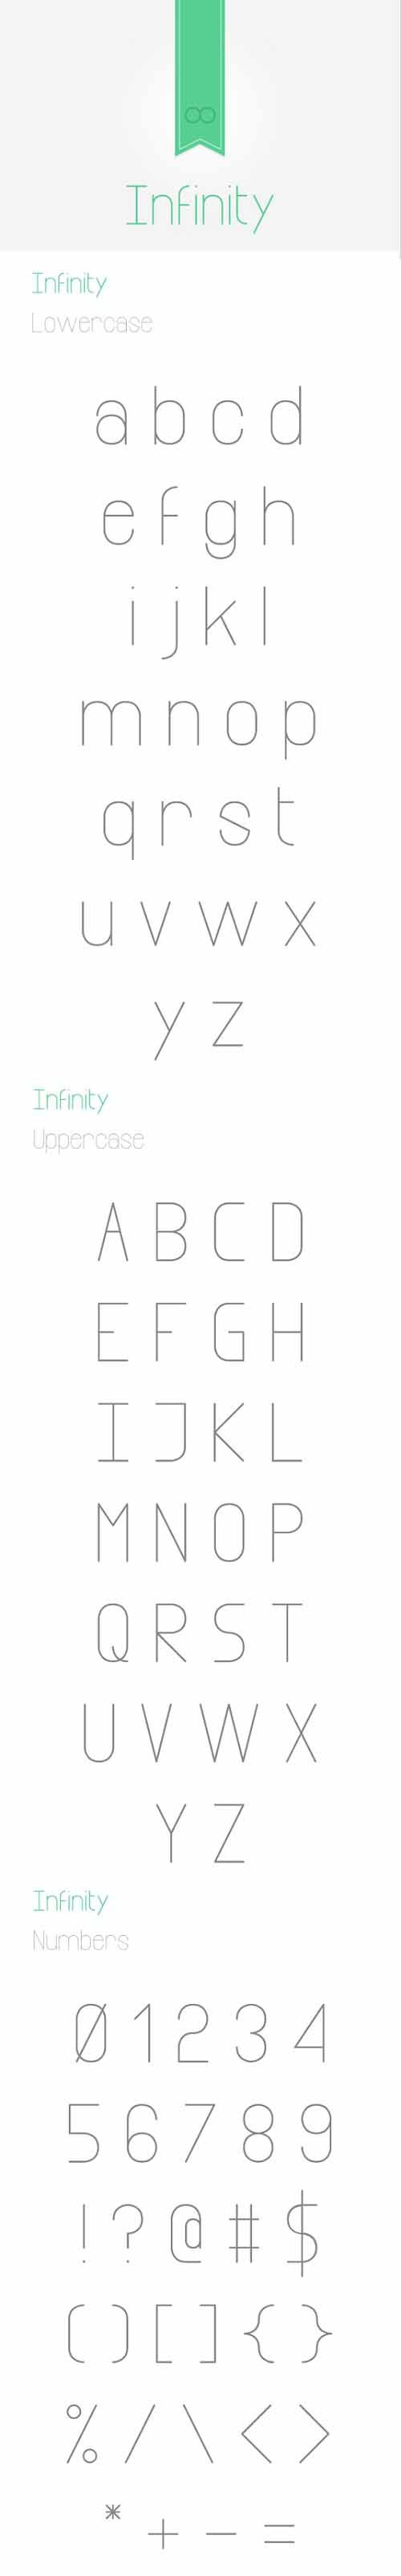 Infinity Font Style